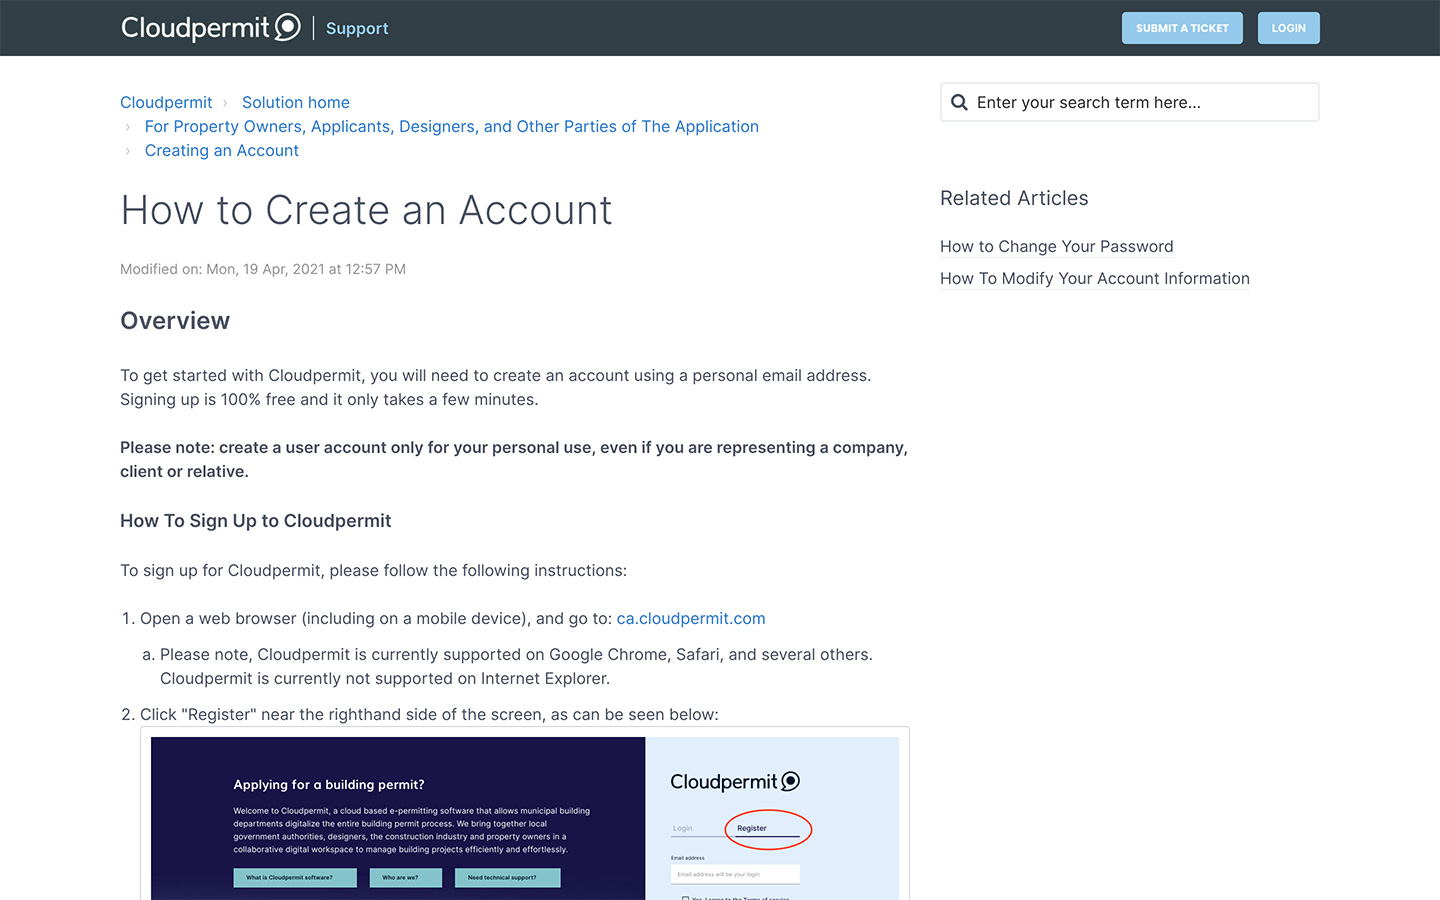 View of Cloudpermits online support portal showing support article on how to create an account.